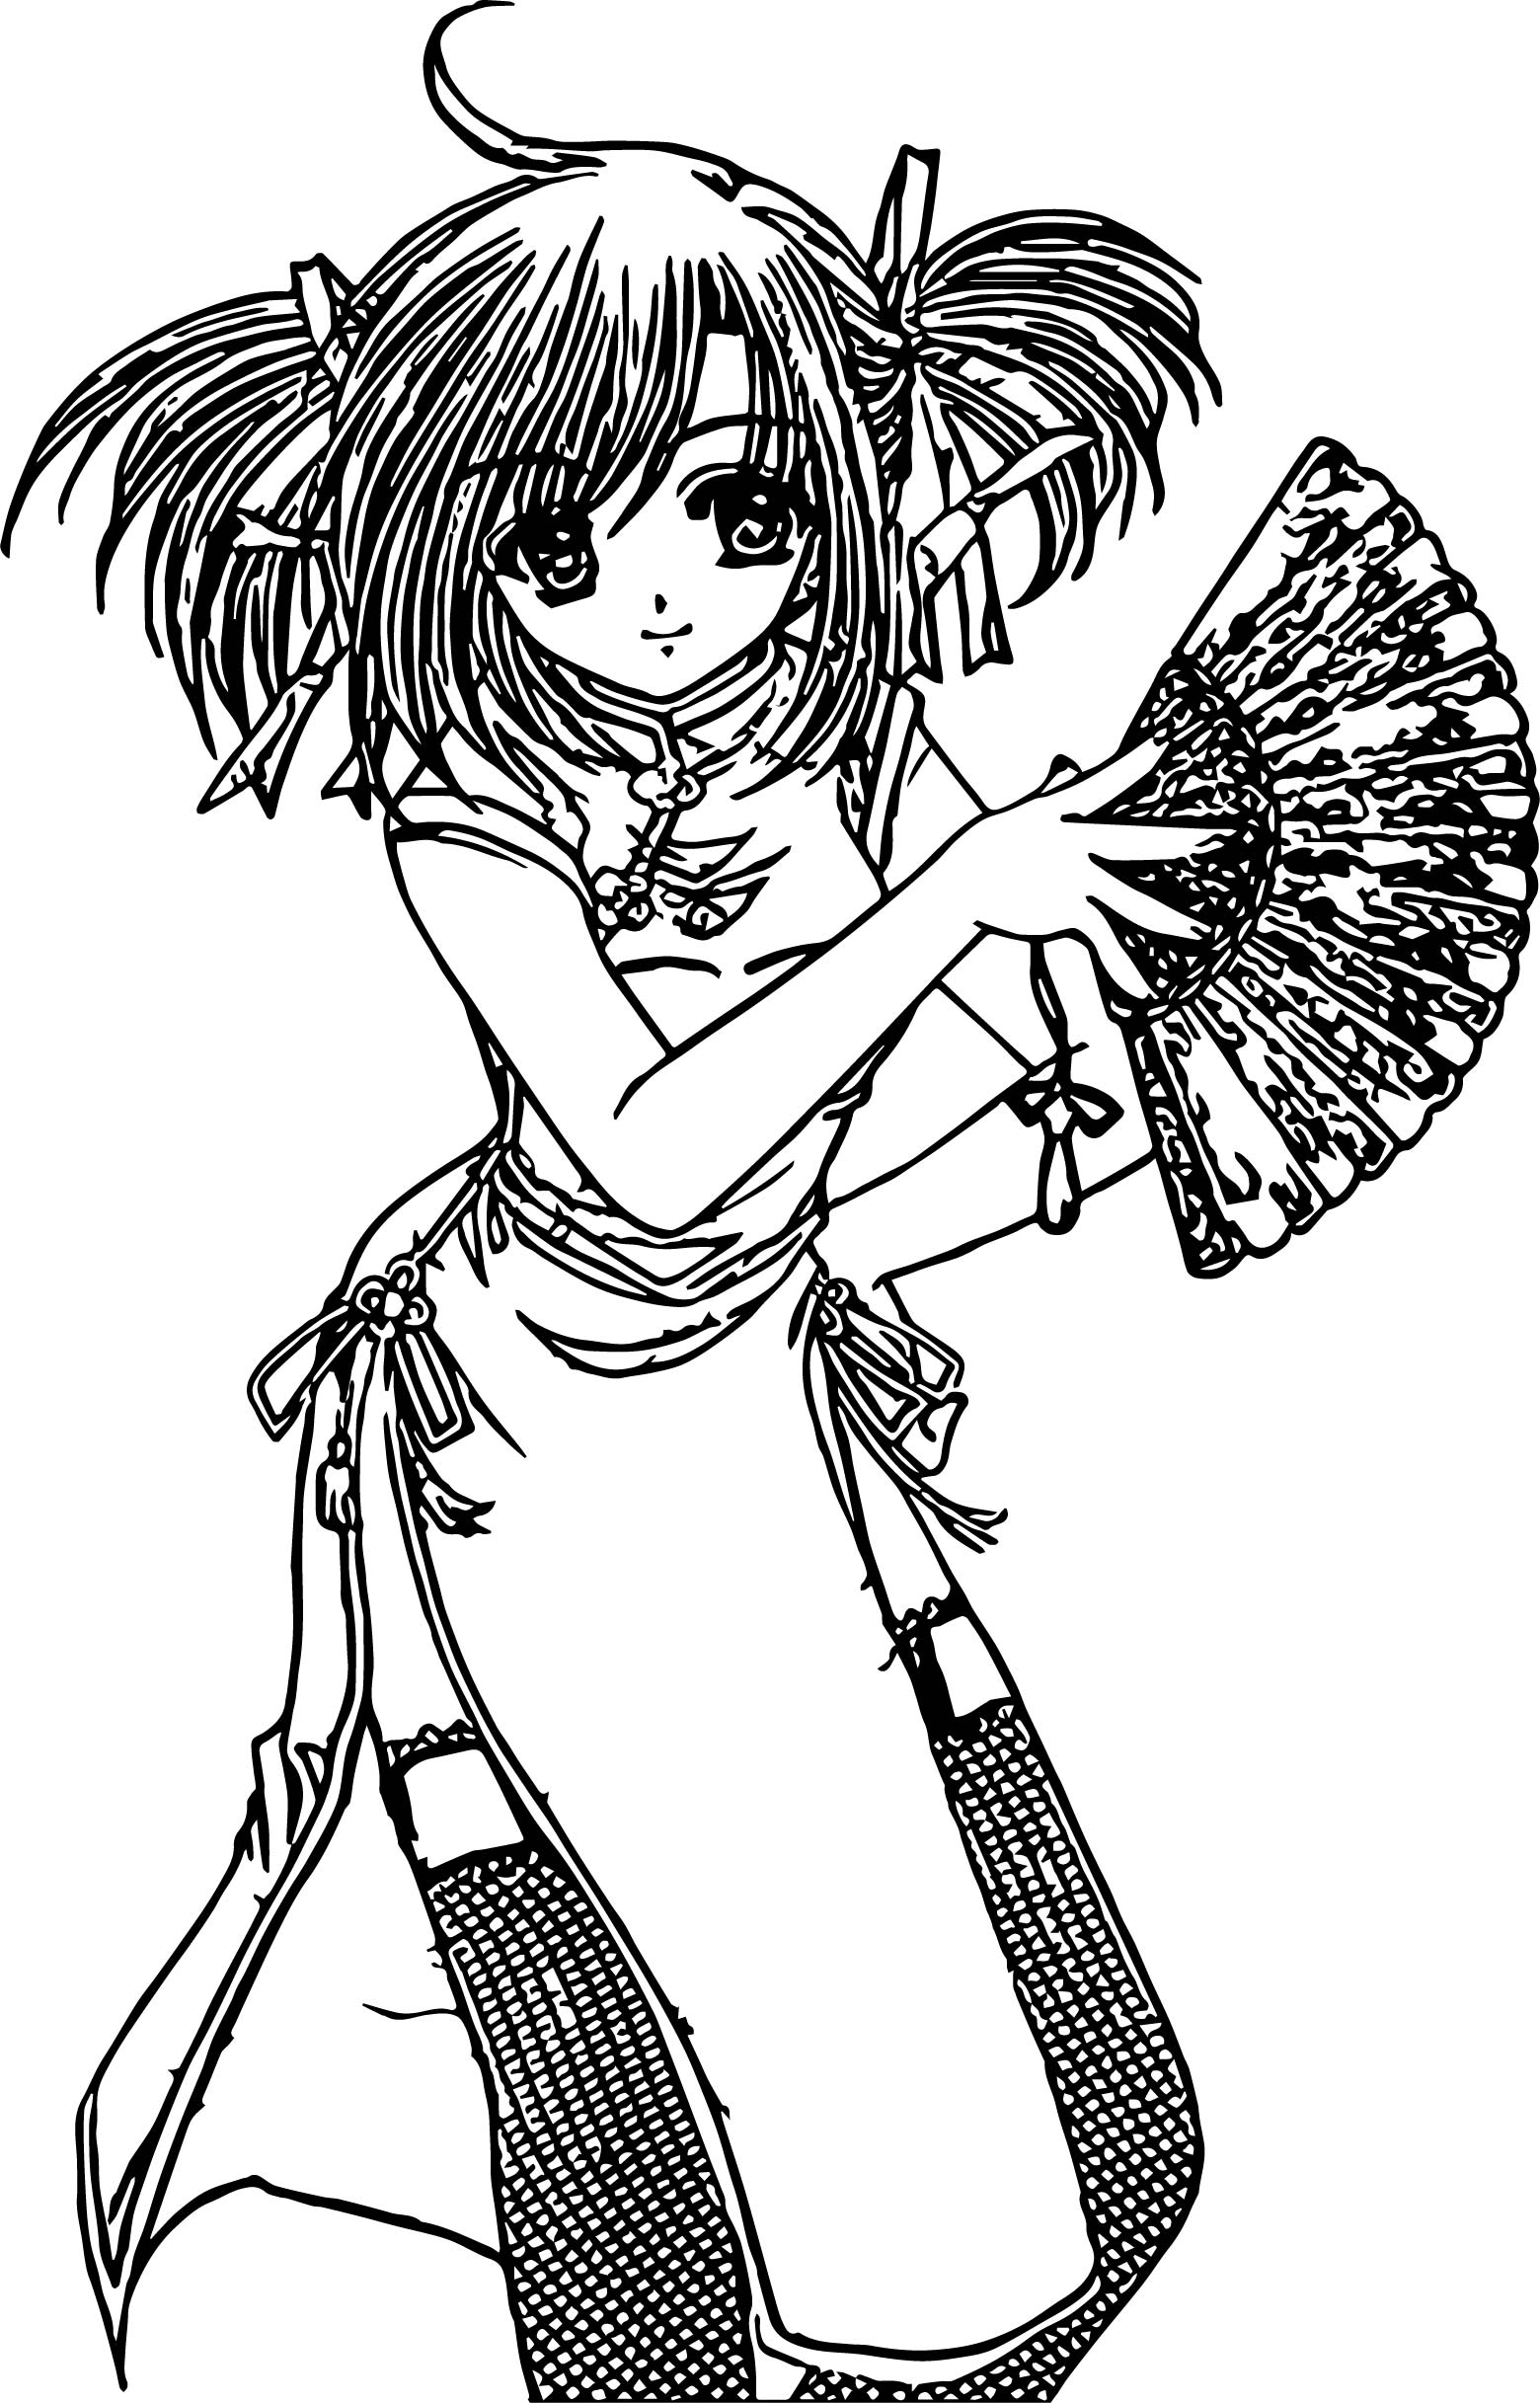 Japan Anime Girl Coloring Page